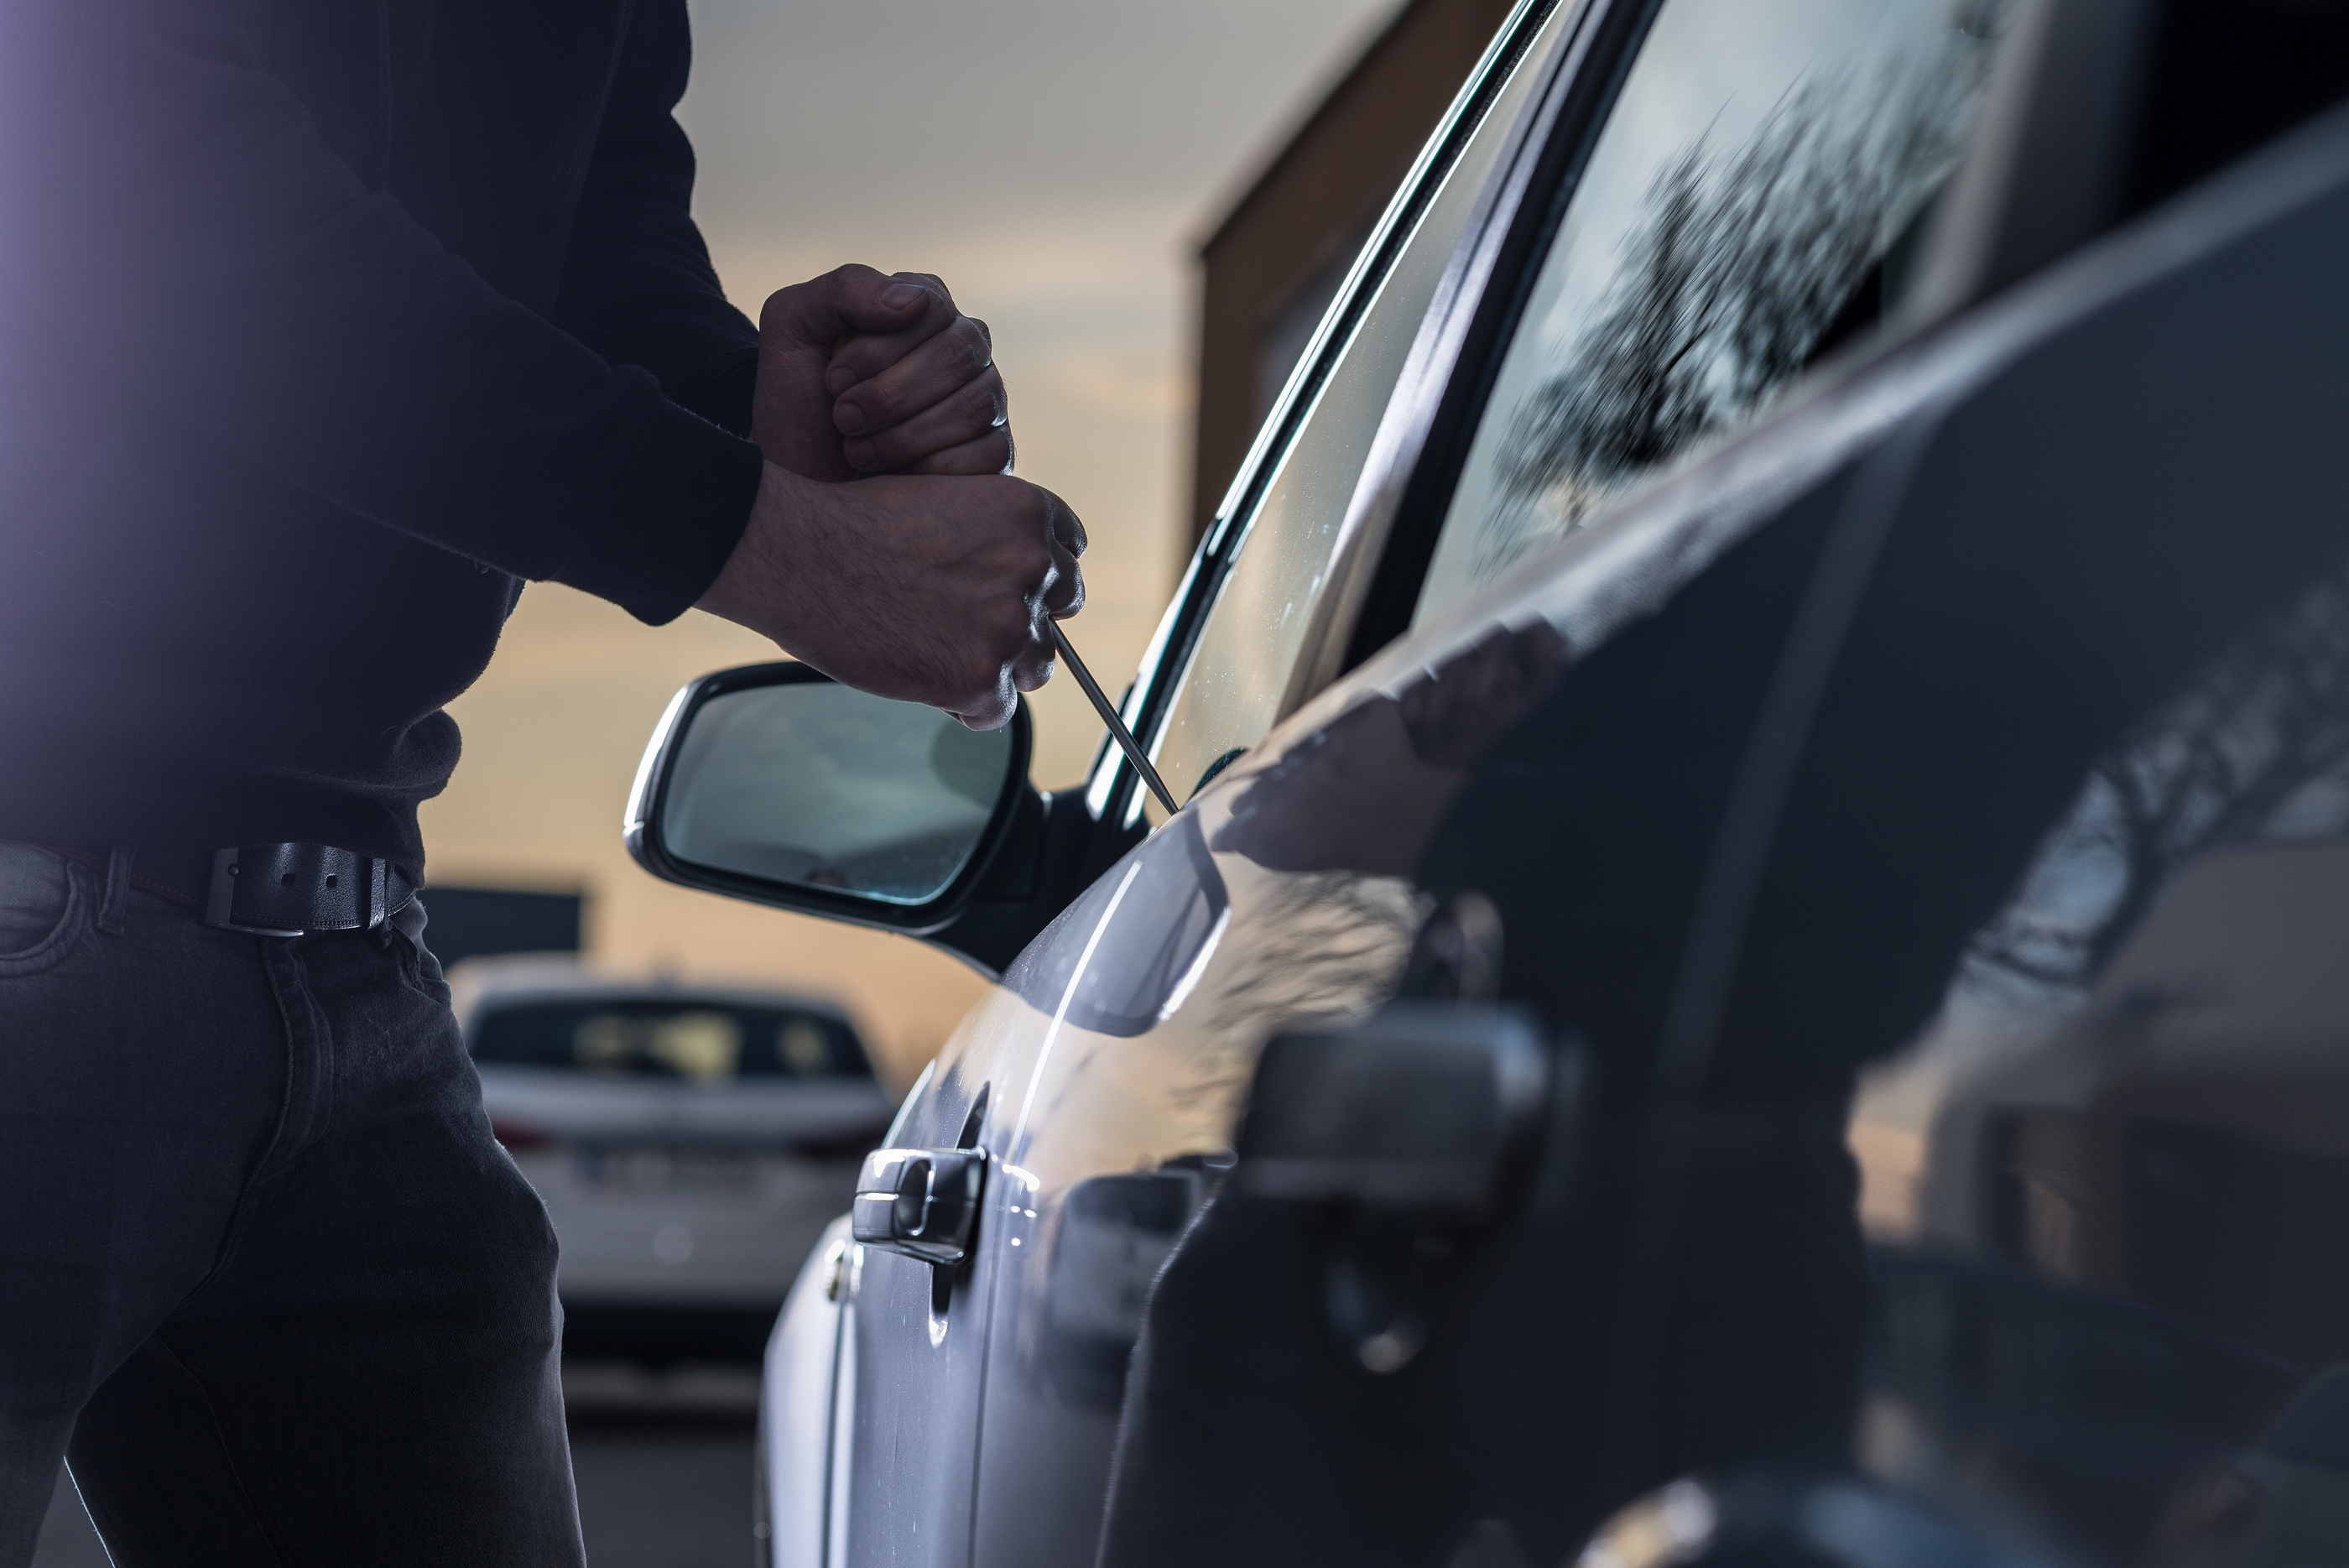 Auto Theft Cases Are Rising in Texas